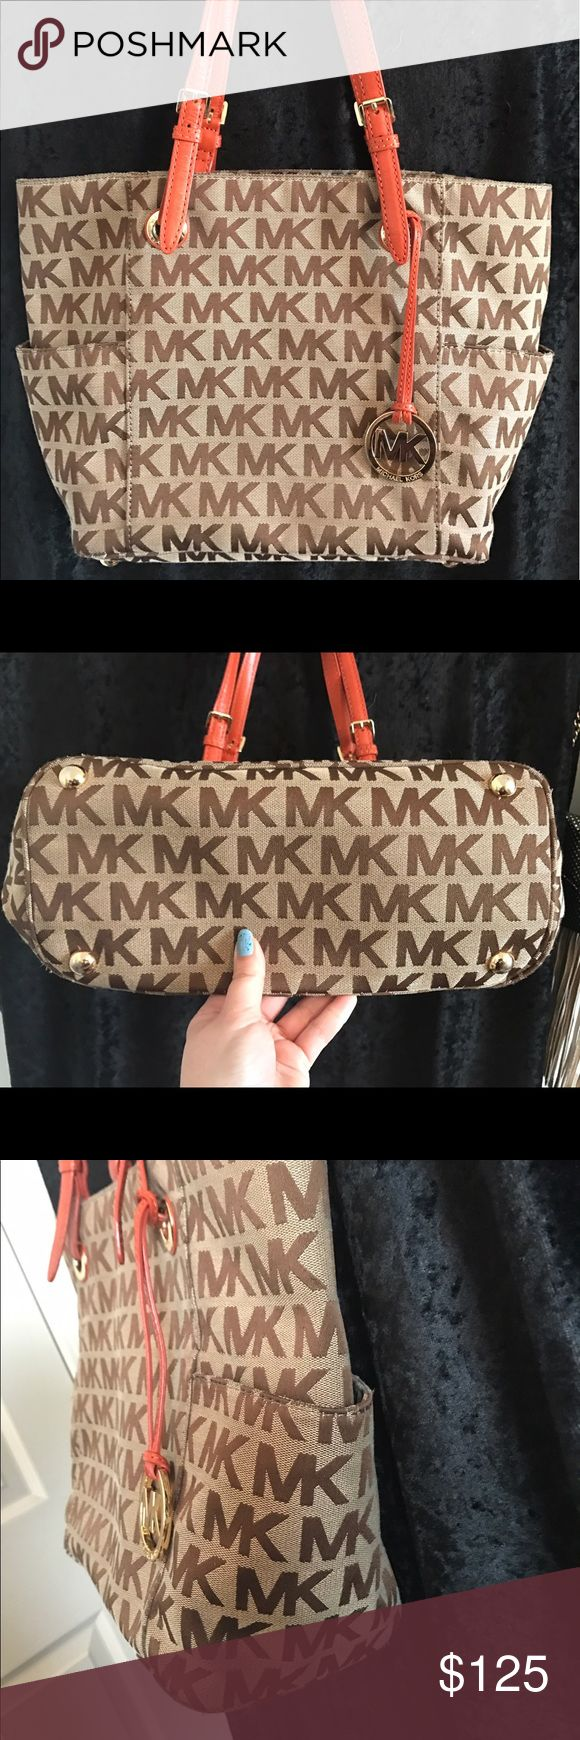 Michael Kors Jet Set Tote Authentic Michael Kors Jet Set Tote in excellent condition! Very nice orange color handles with khaki body. From smoke free home. Michael Kors Bags